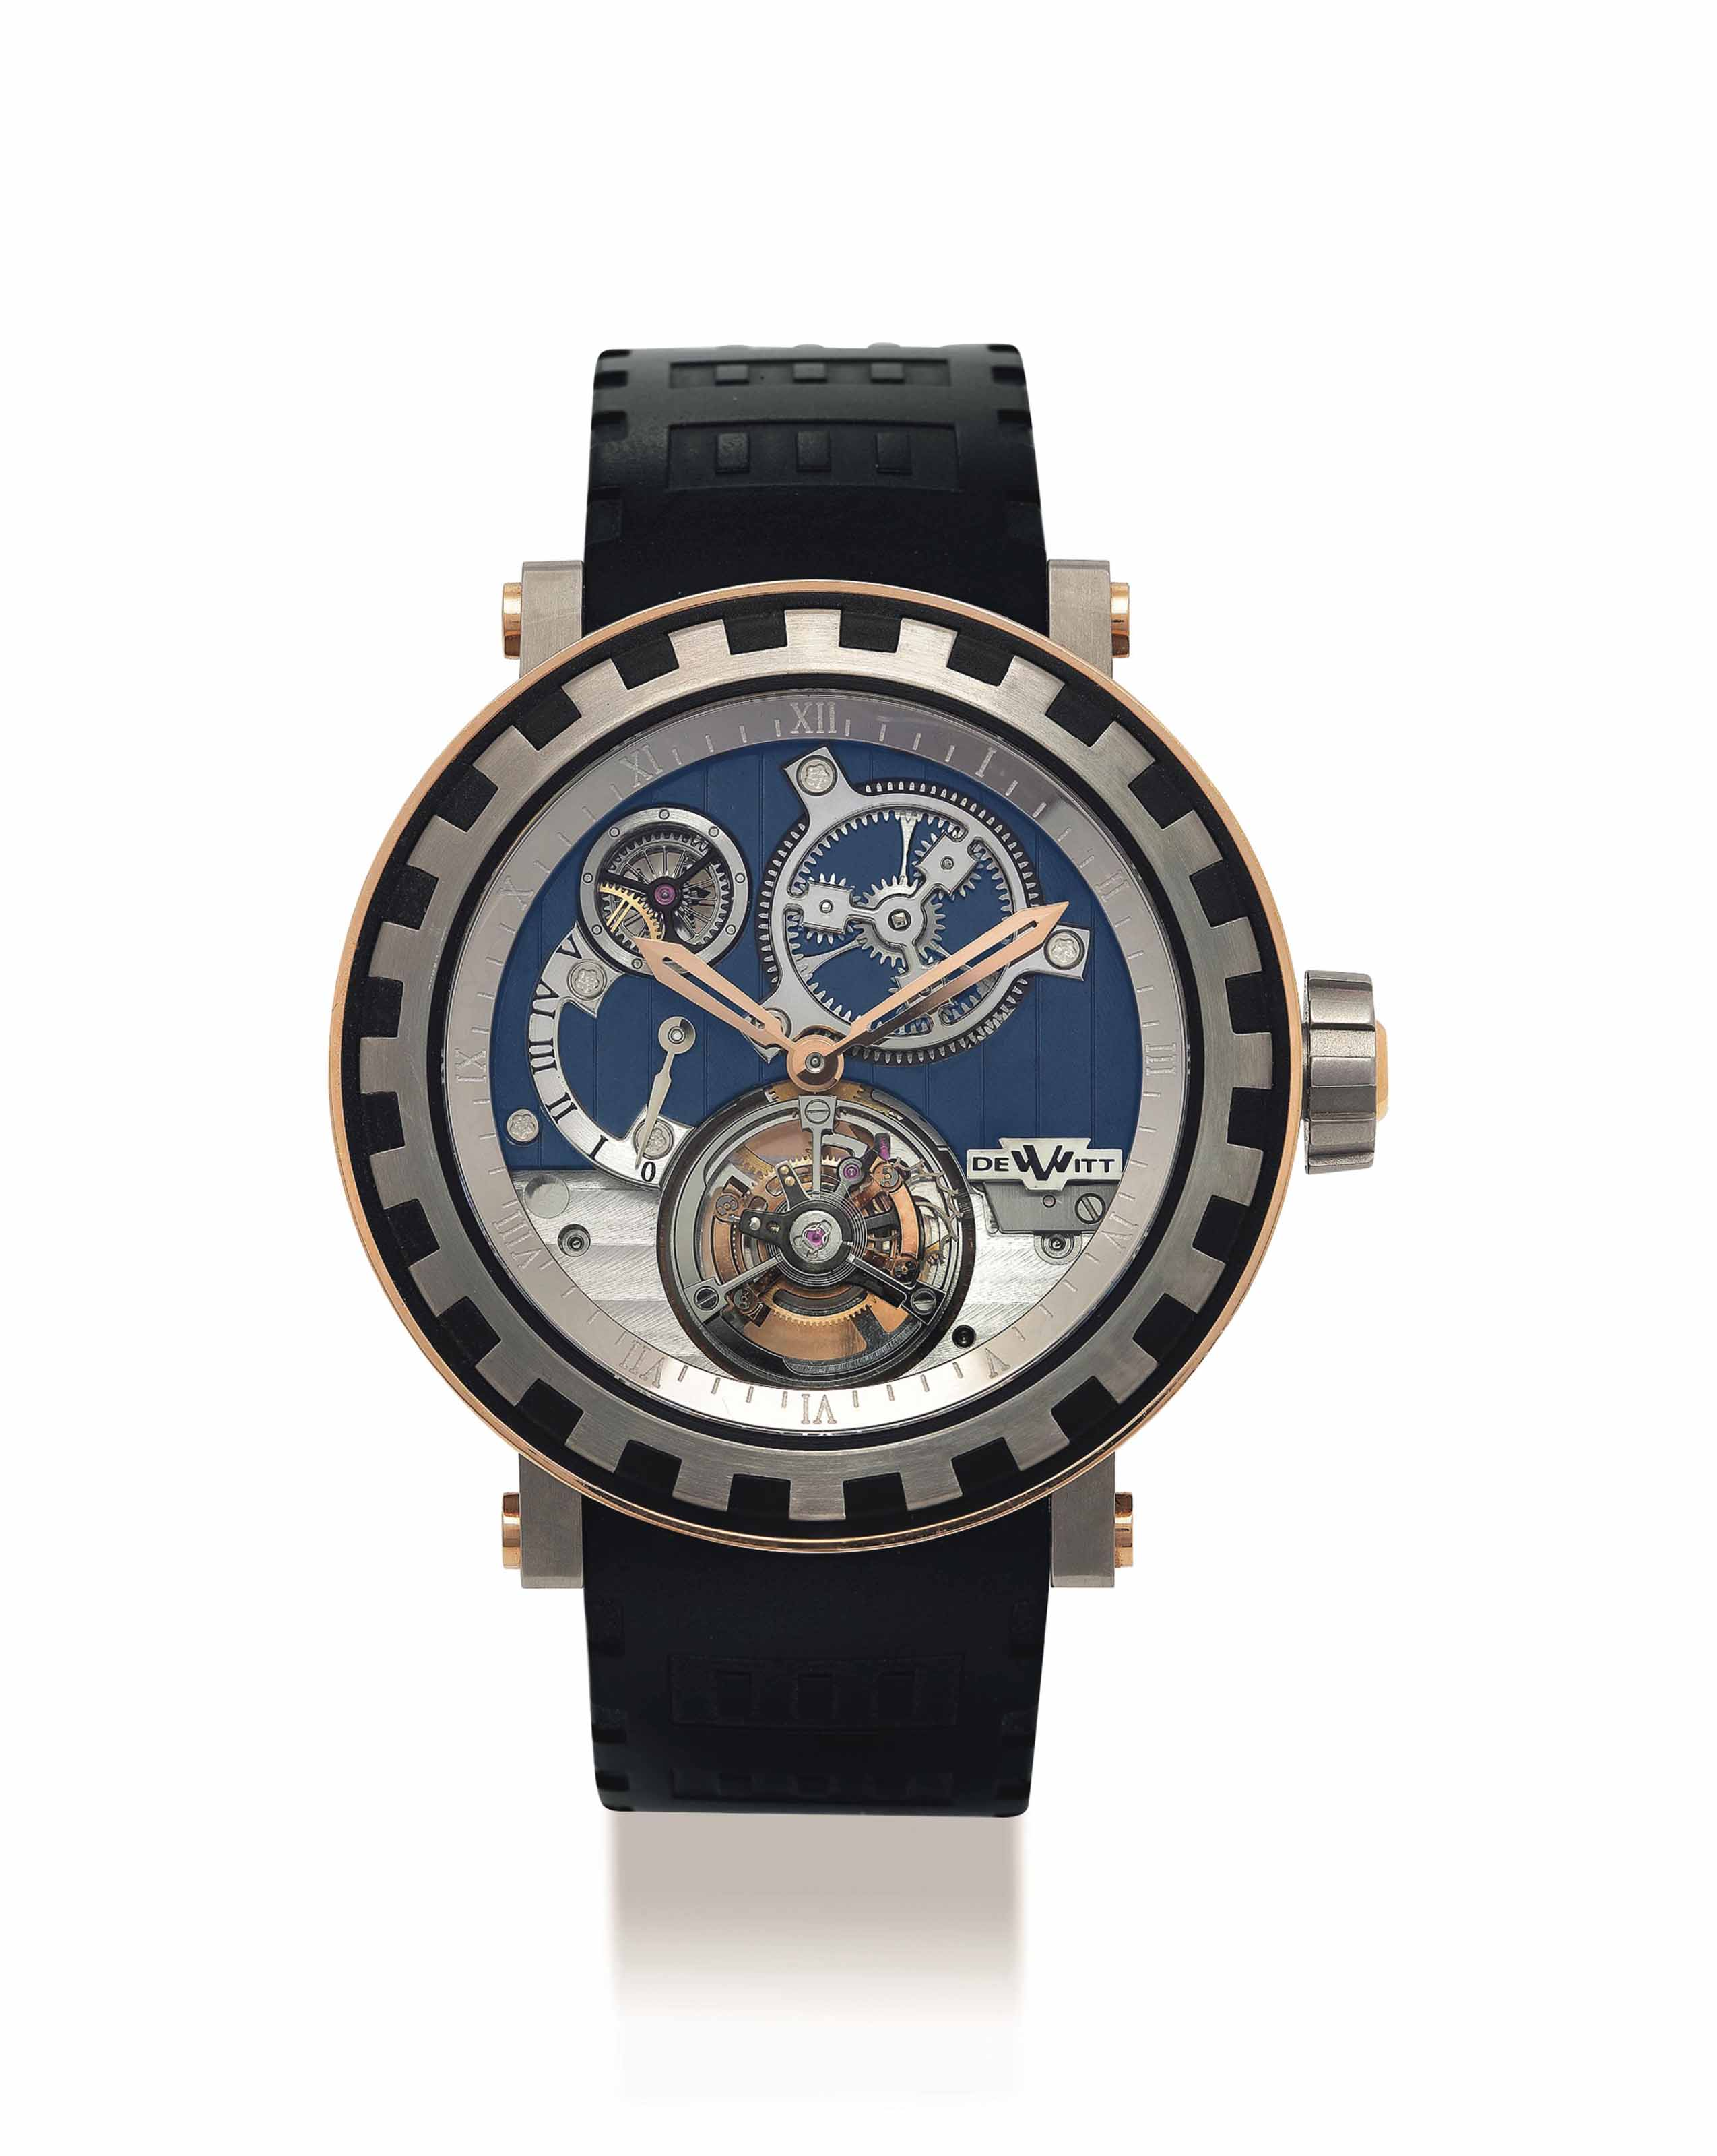 DEWITT. A FINE AND UNIQUE 18K PINK GOLD AND TITANIUM LIMITED EDITION SEMI-SKELETONISED TOURBILLON WRISTWATCH WITH 5 DAY POWER RESERVE